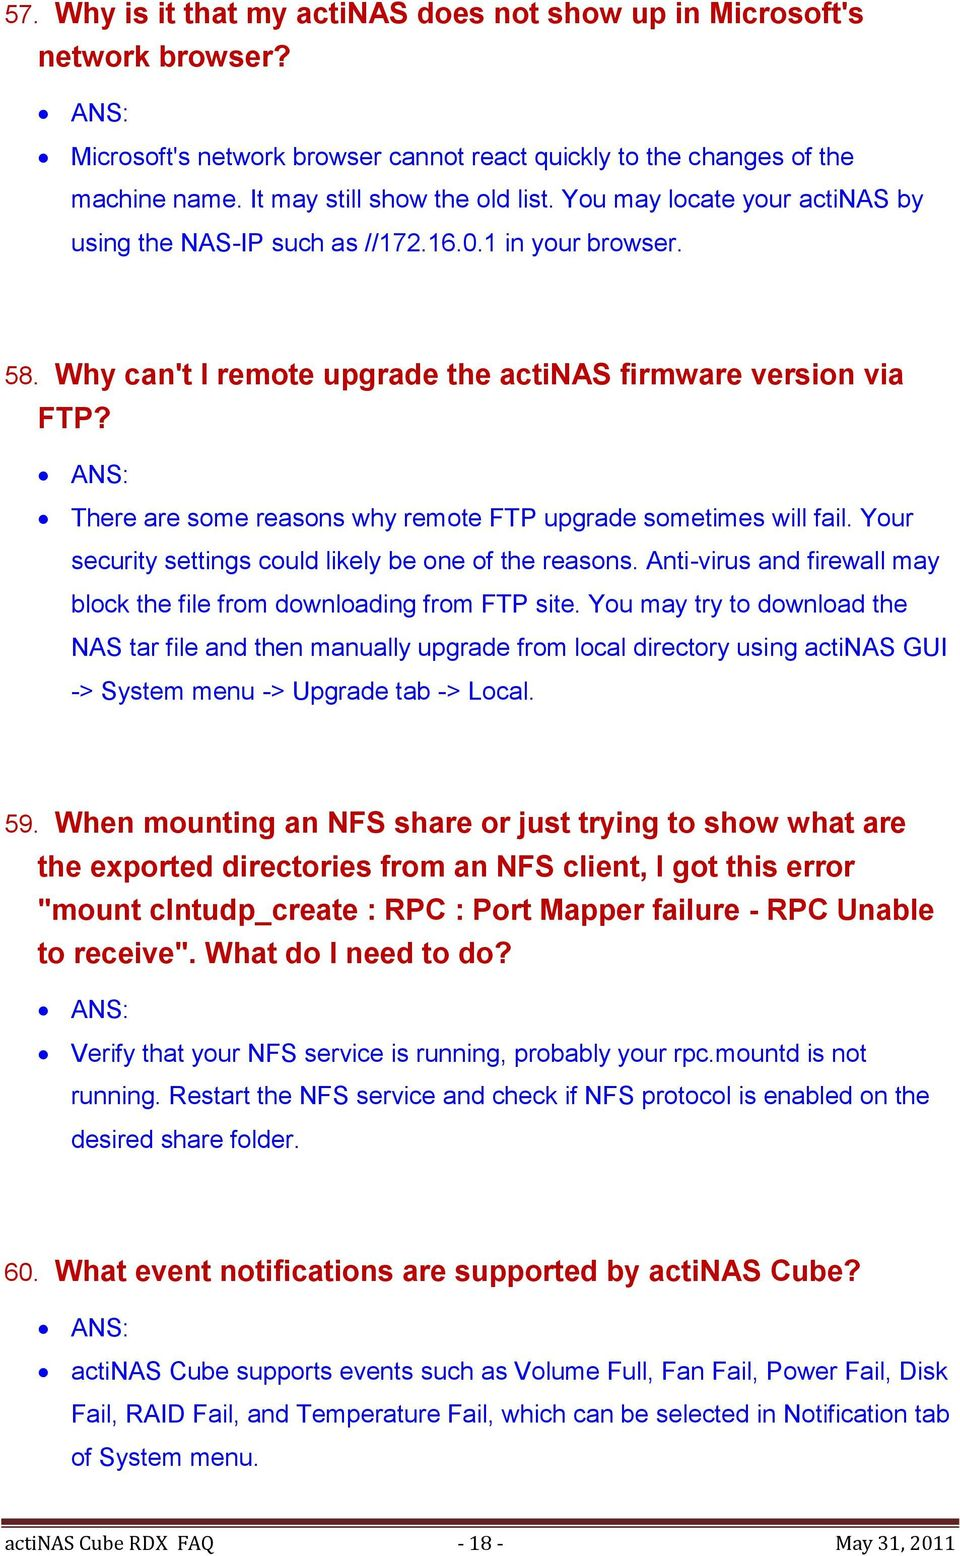 There are some reasons why remote FTP upgrade sometimes will fail. Your security settings could likely be one of the reasons. Anti-virus and firewall may block the file from downloading from FTP site.